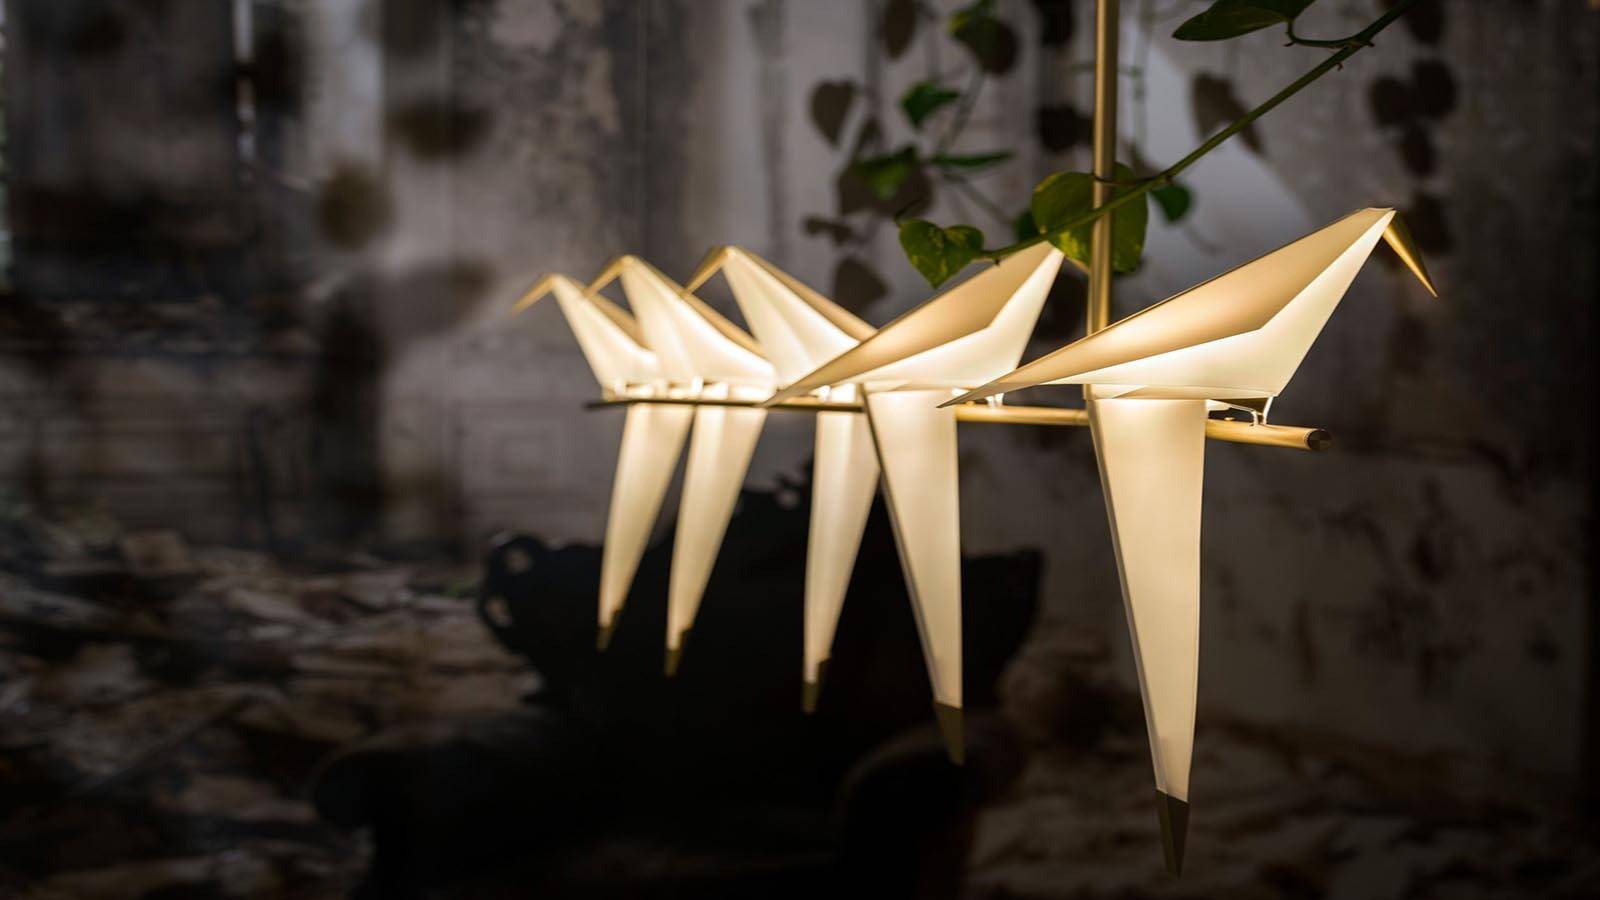 La lampada Moooi Perch Light Branch è presentata appesa a un soffitto avvolta da edera, in primo pia